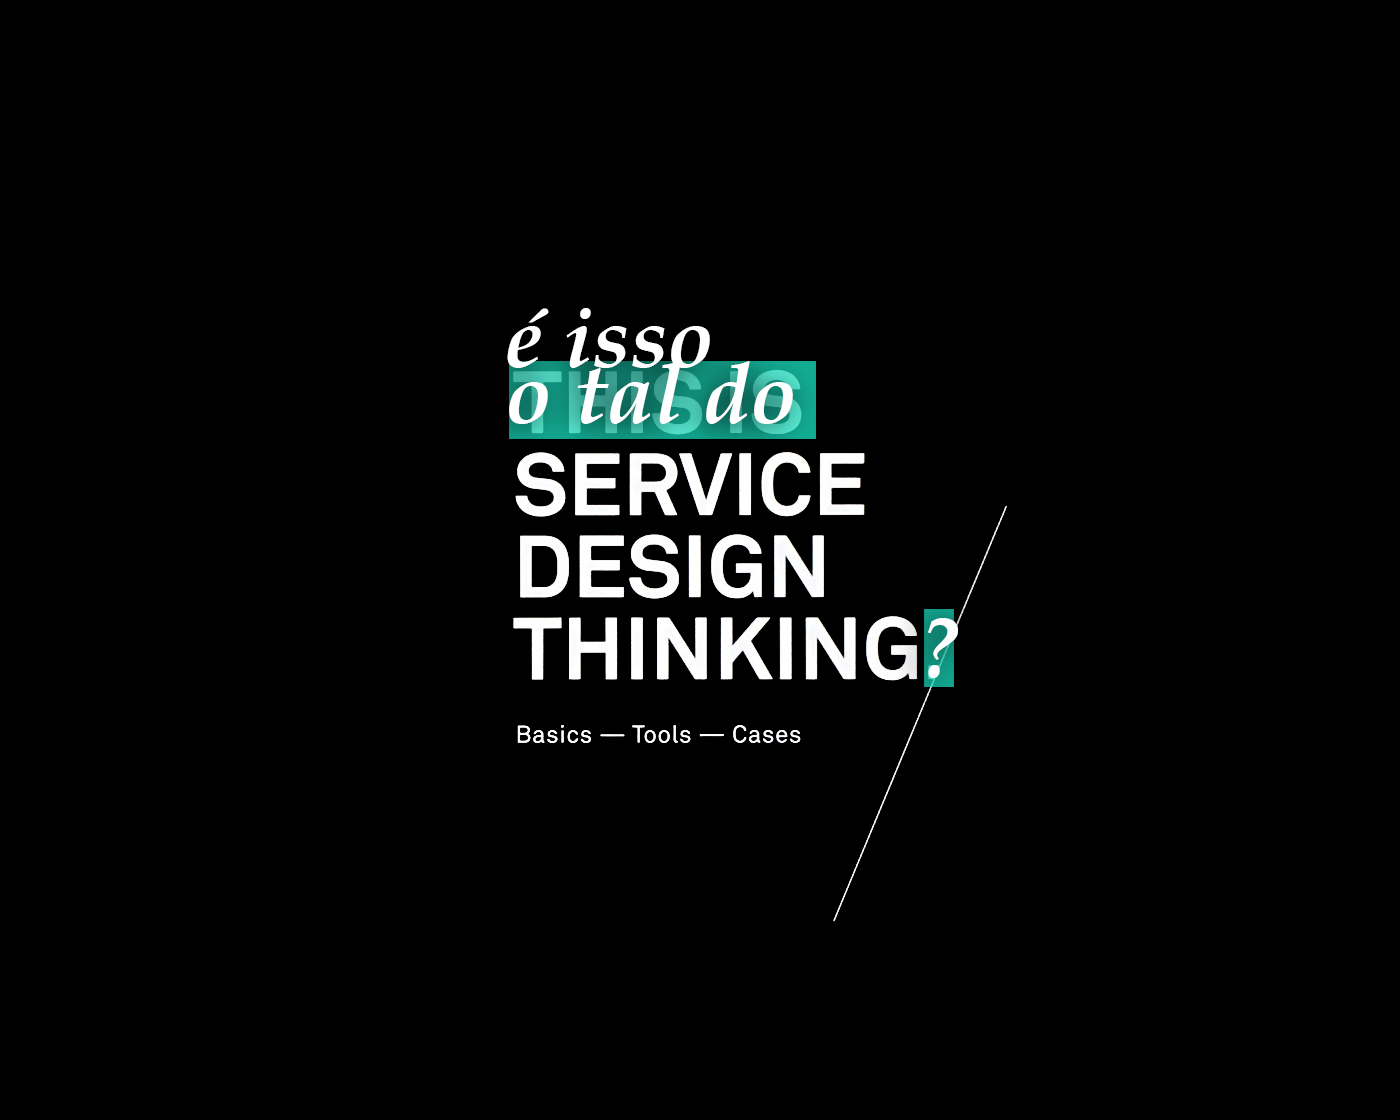 É isso o tal do Service Design Thinking?